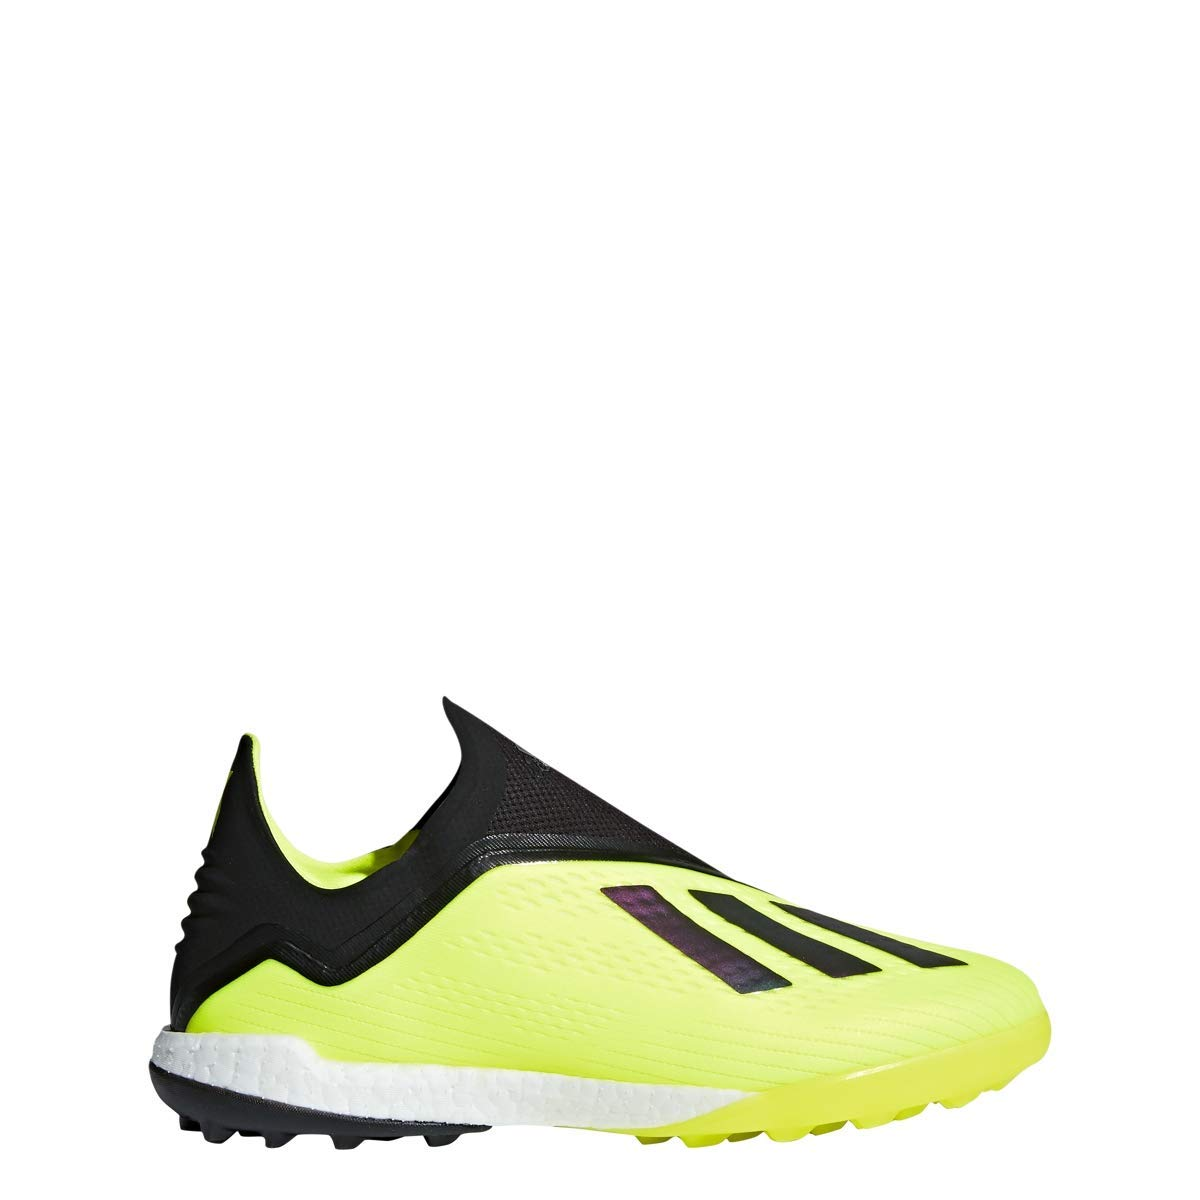 Solar Yellow-Black-White adidas X Tango 18+ Turf shoes Men's Soccer